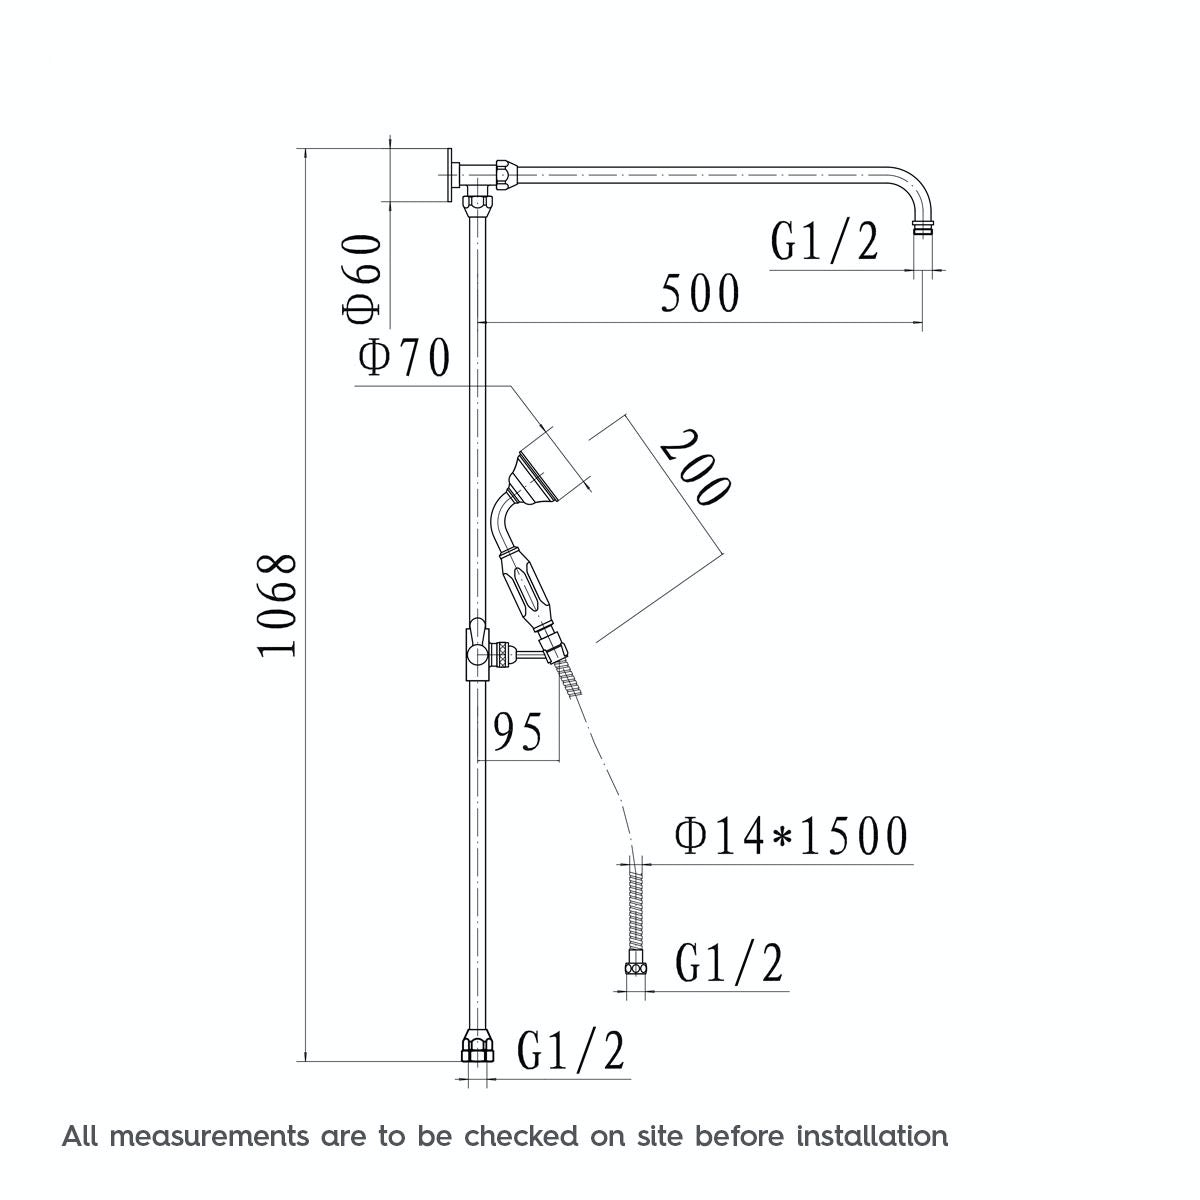 Dimensions for The Bath Co. Winchester dual valve riser shower system